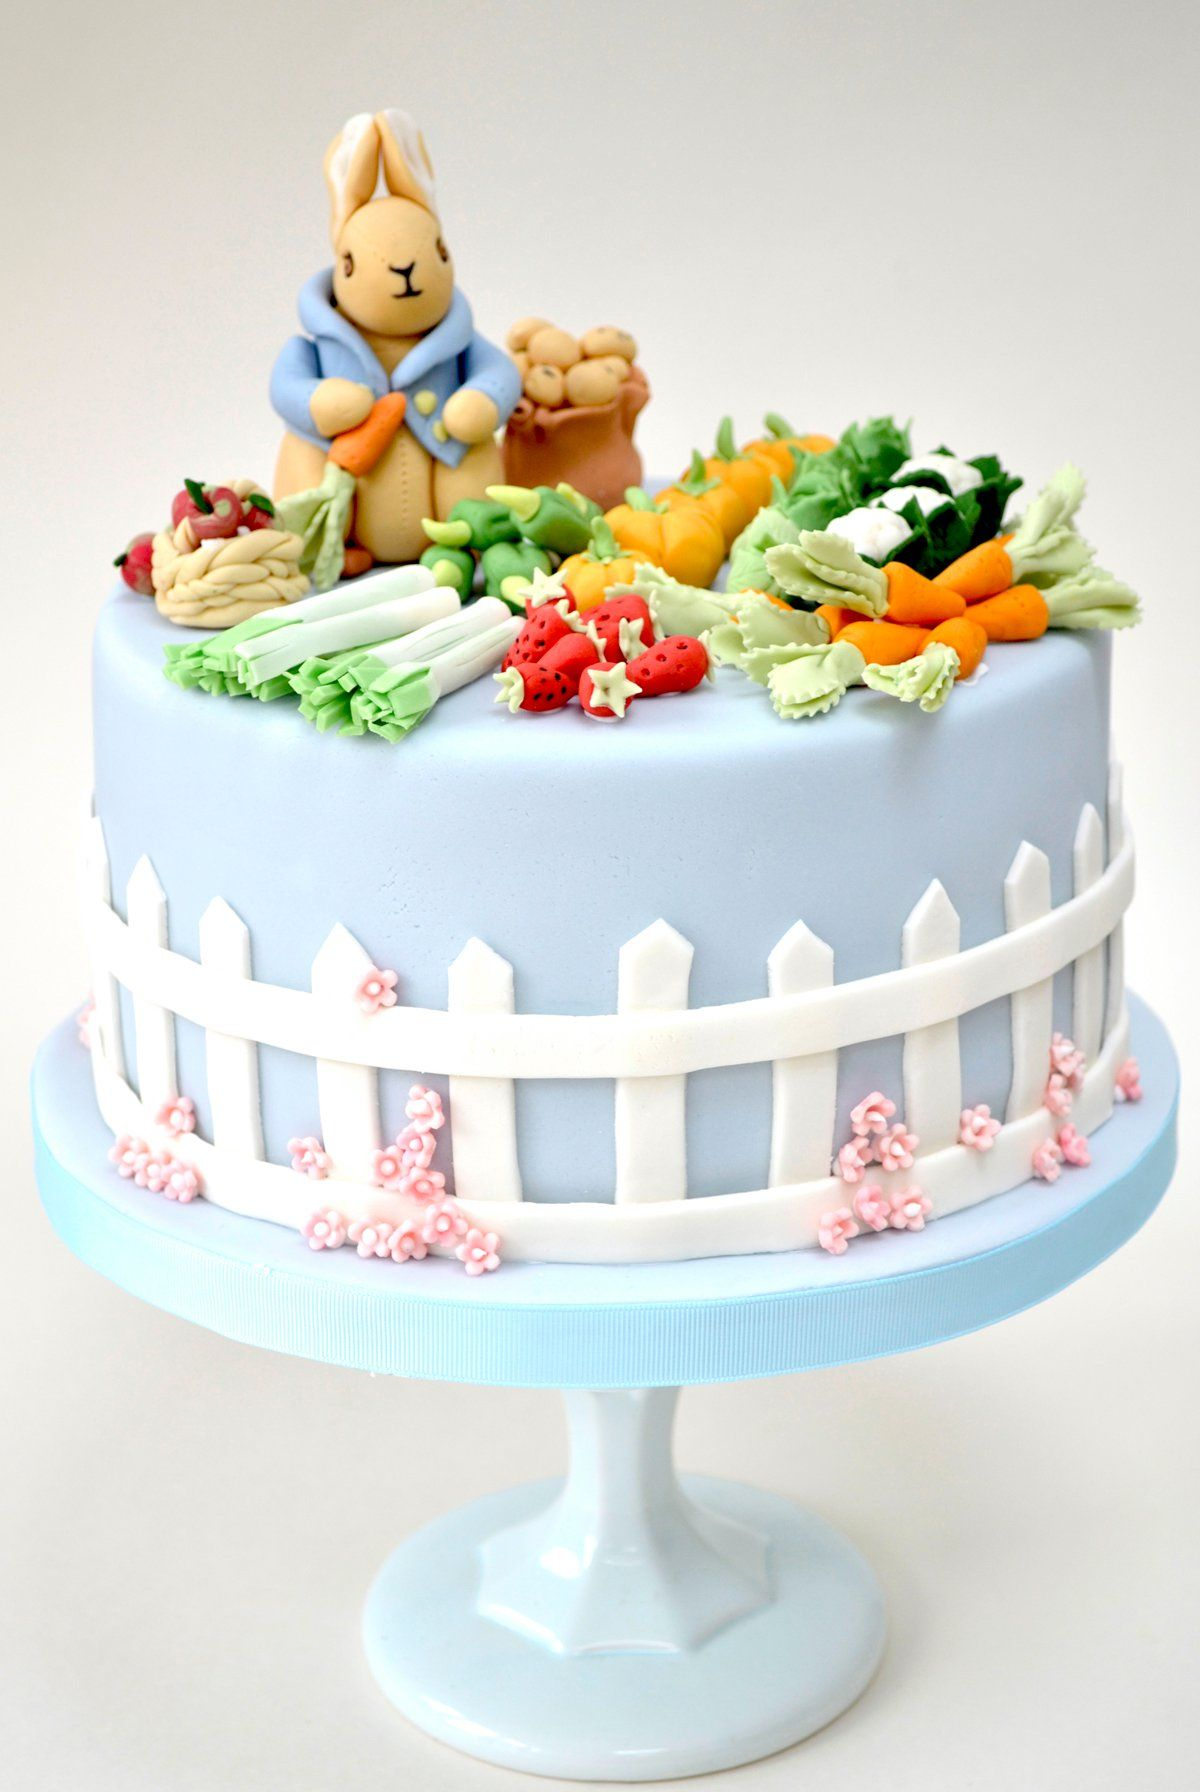 Peter Rabbit cake by RosalindMillerCakescommy favorite character